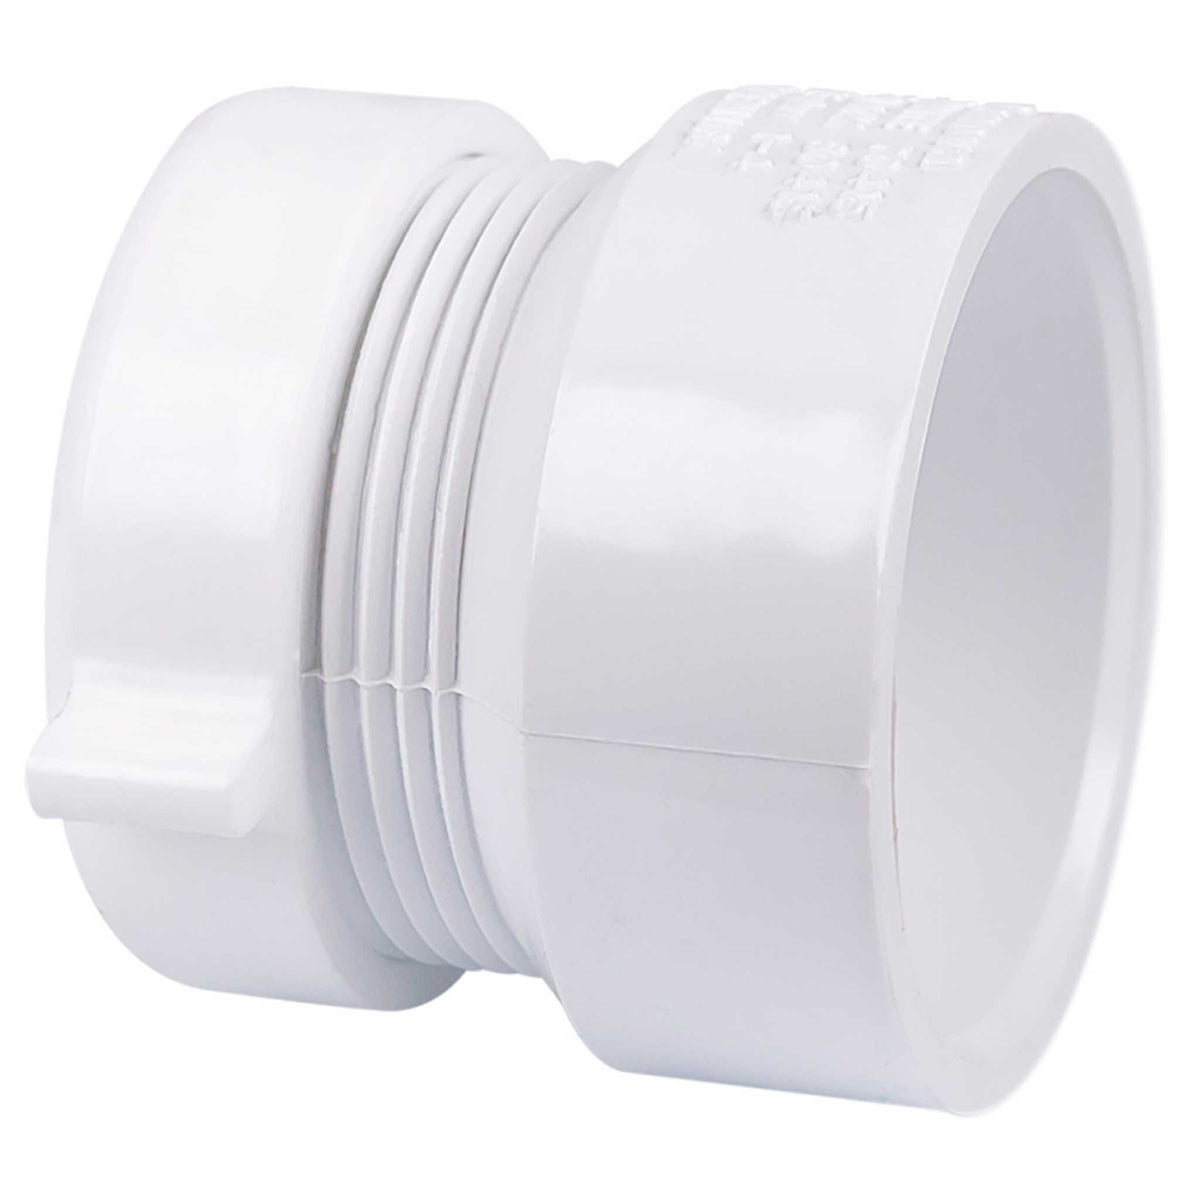 Schedule 40 PVC DWV Trap Adapter - Female with Plastic Nut